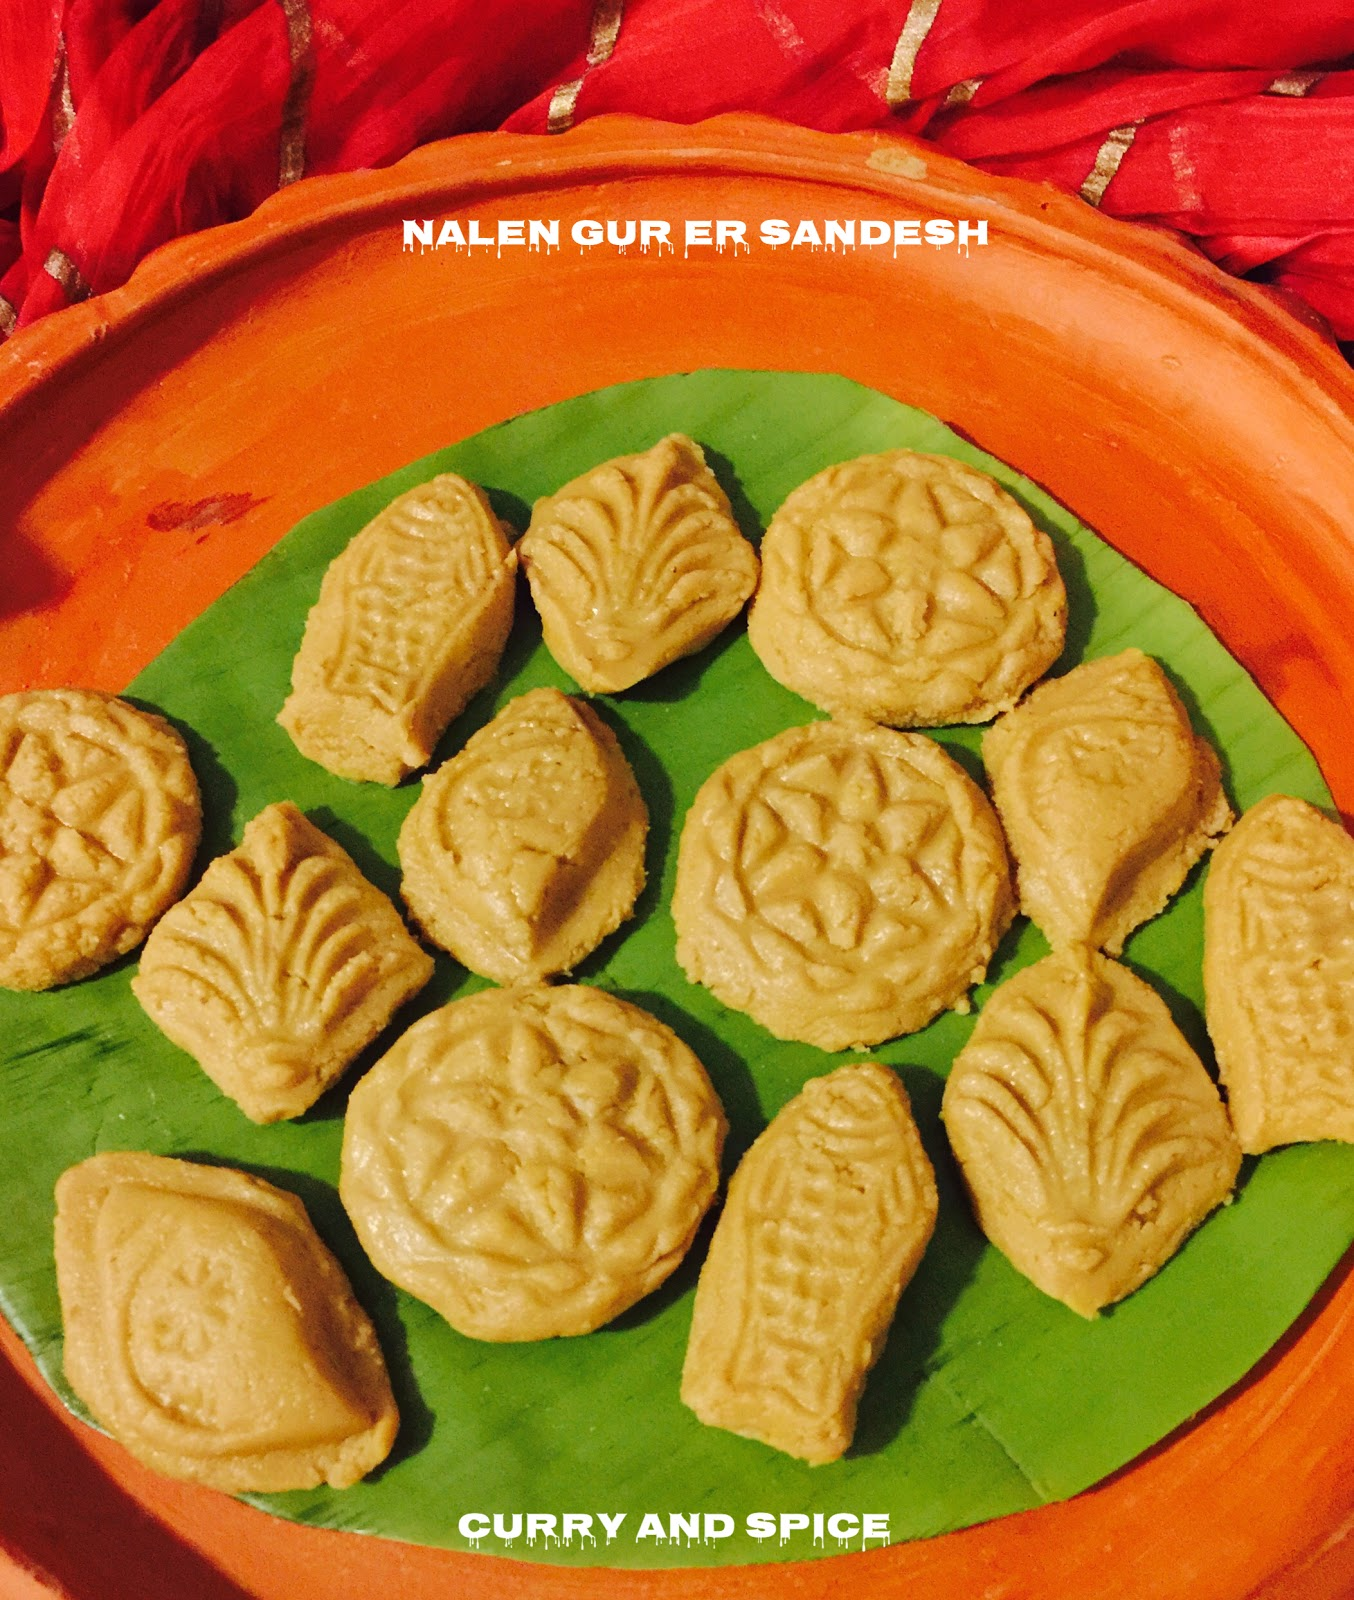 CURRY AND SPICE: NOLEN GURER SANDESH / COTTAGE CHEESE